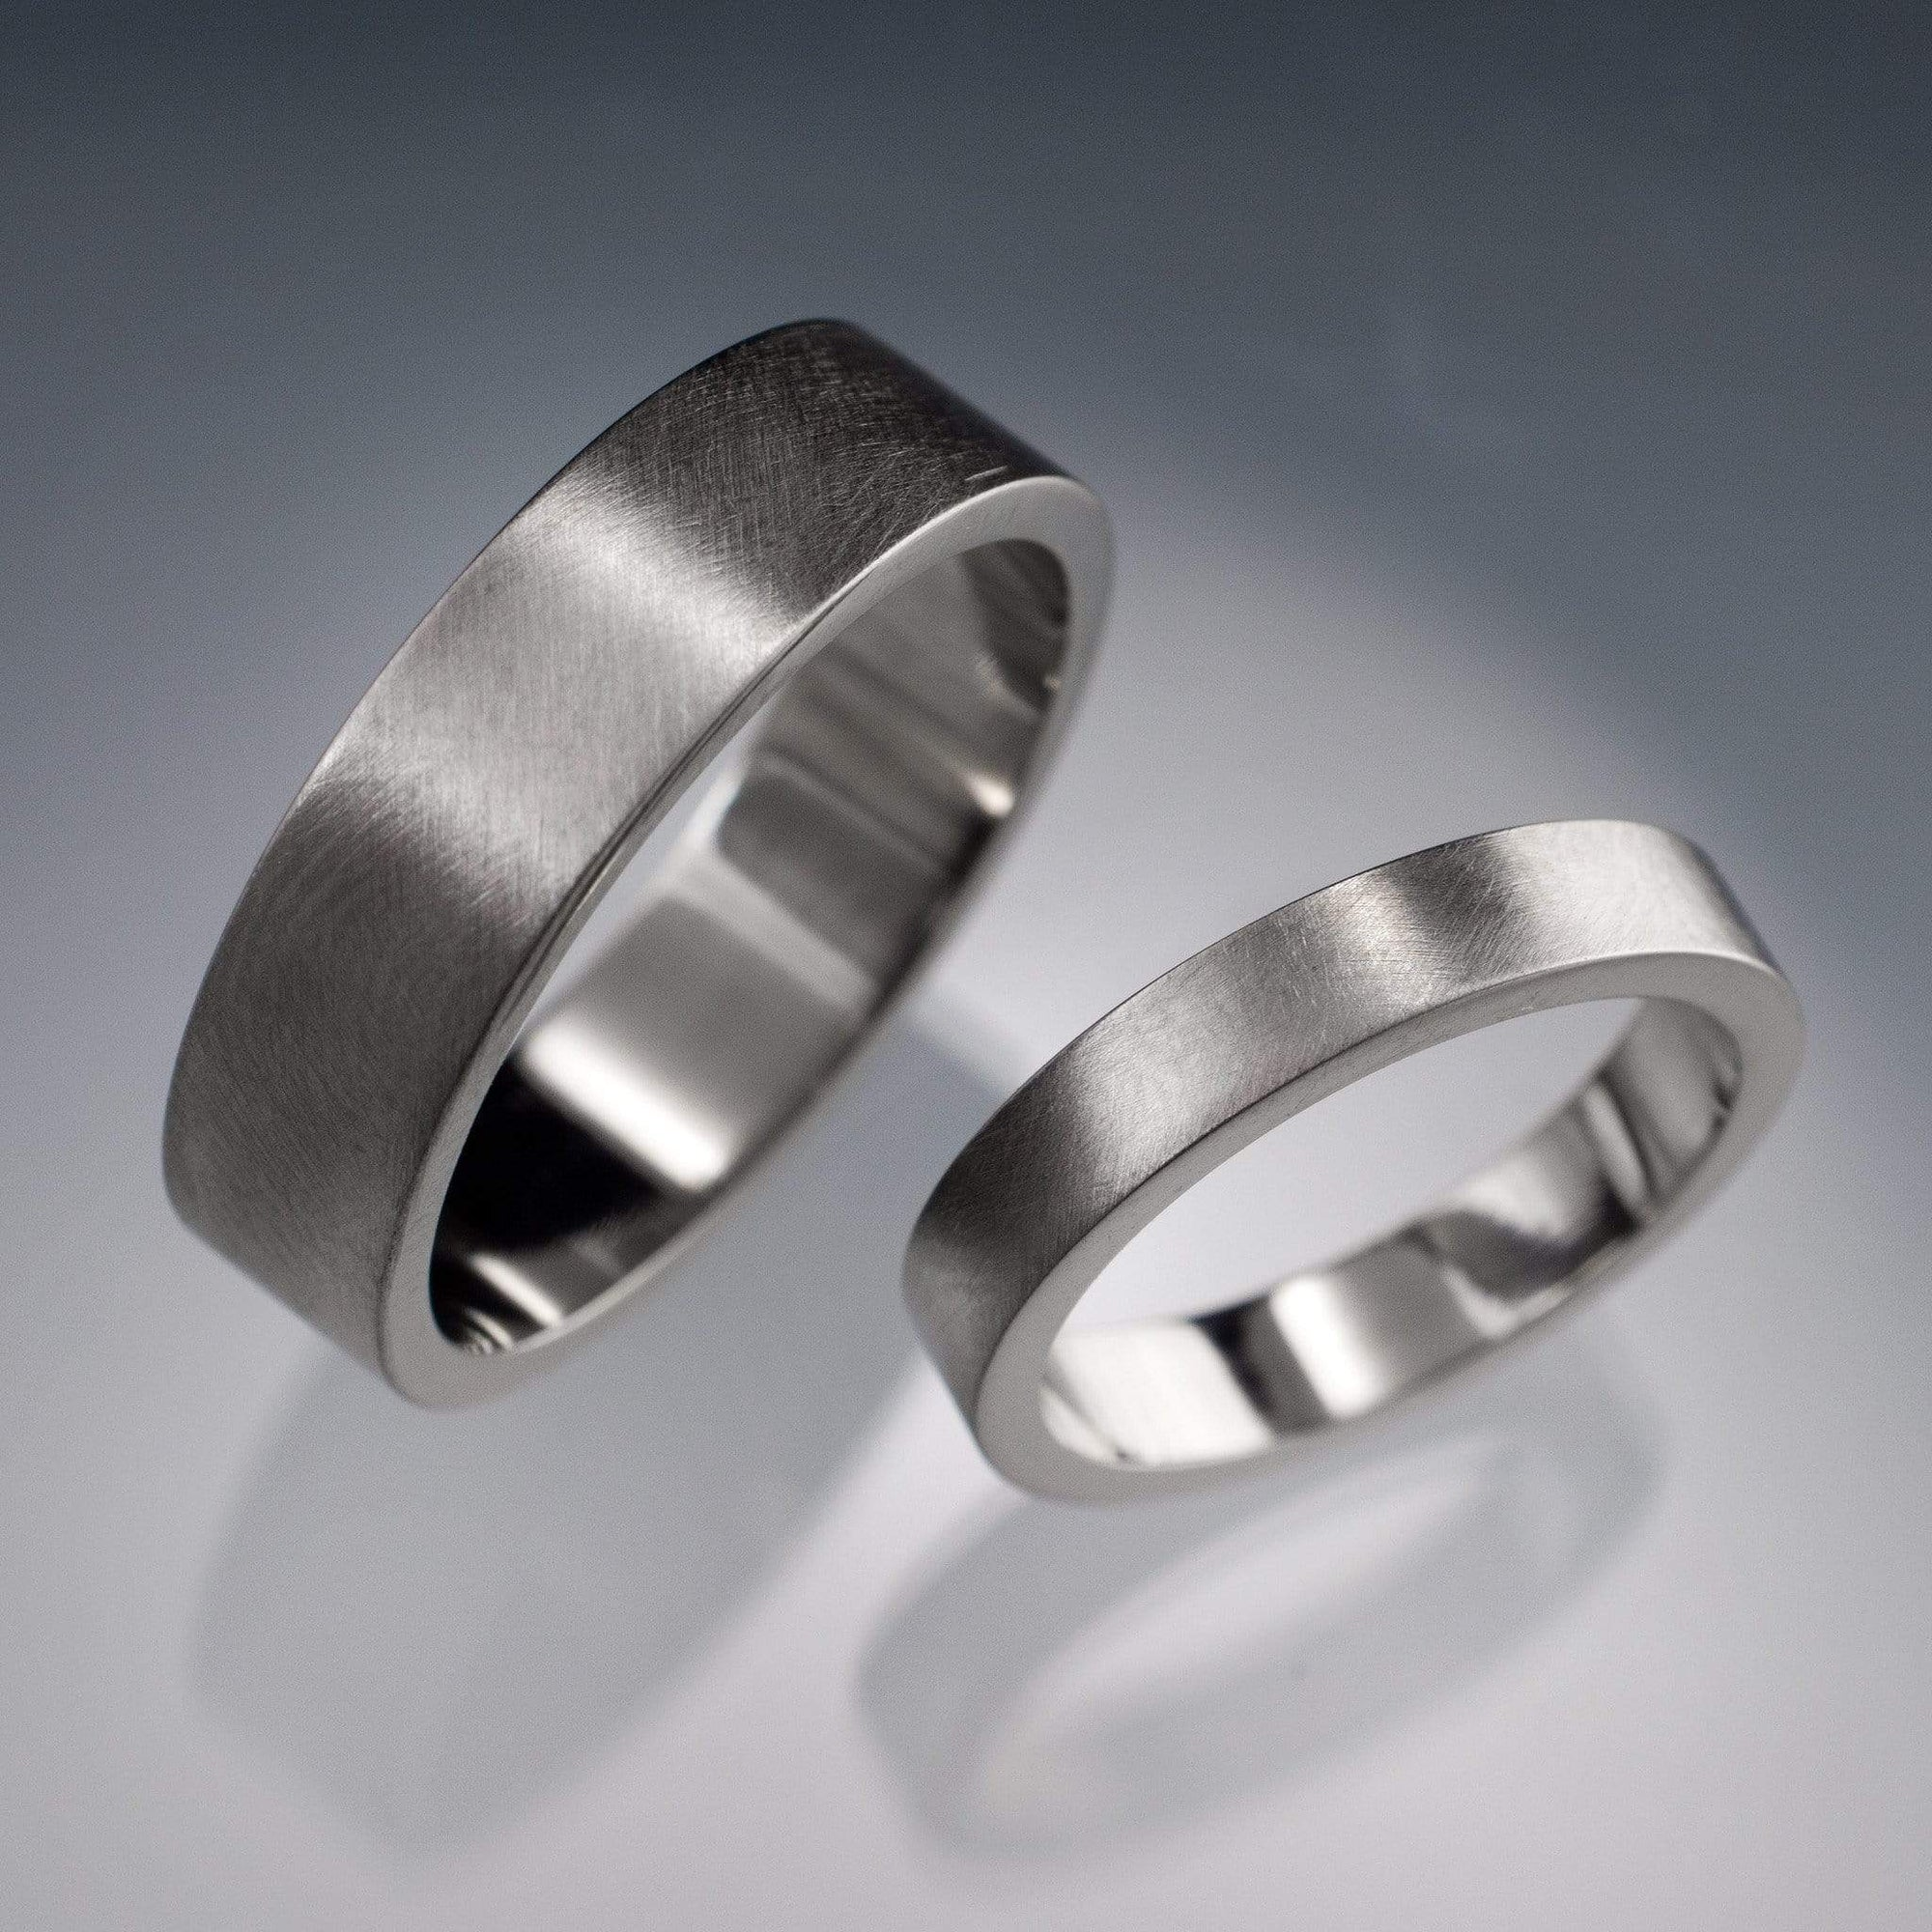 Simple Flat Style Wedding Bands, Set of 2 Wedding Rings